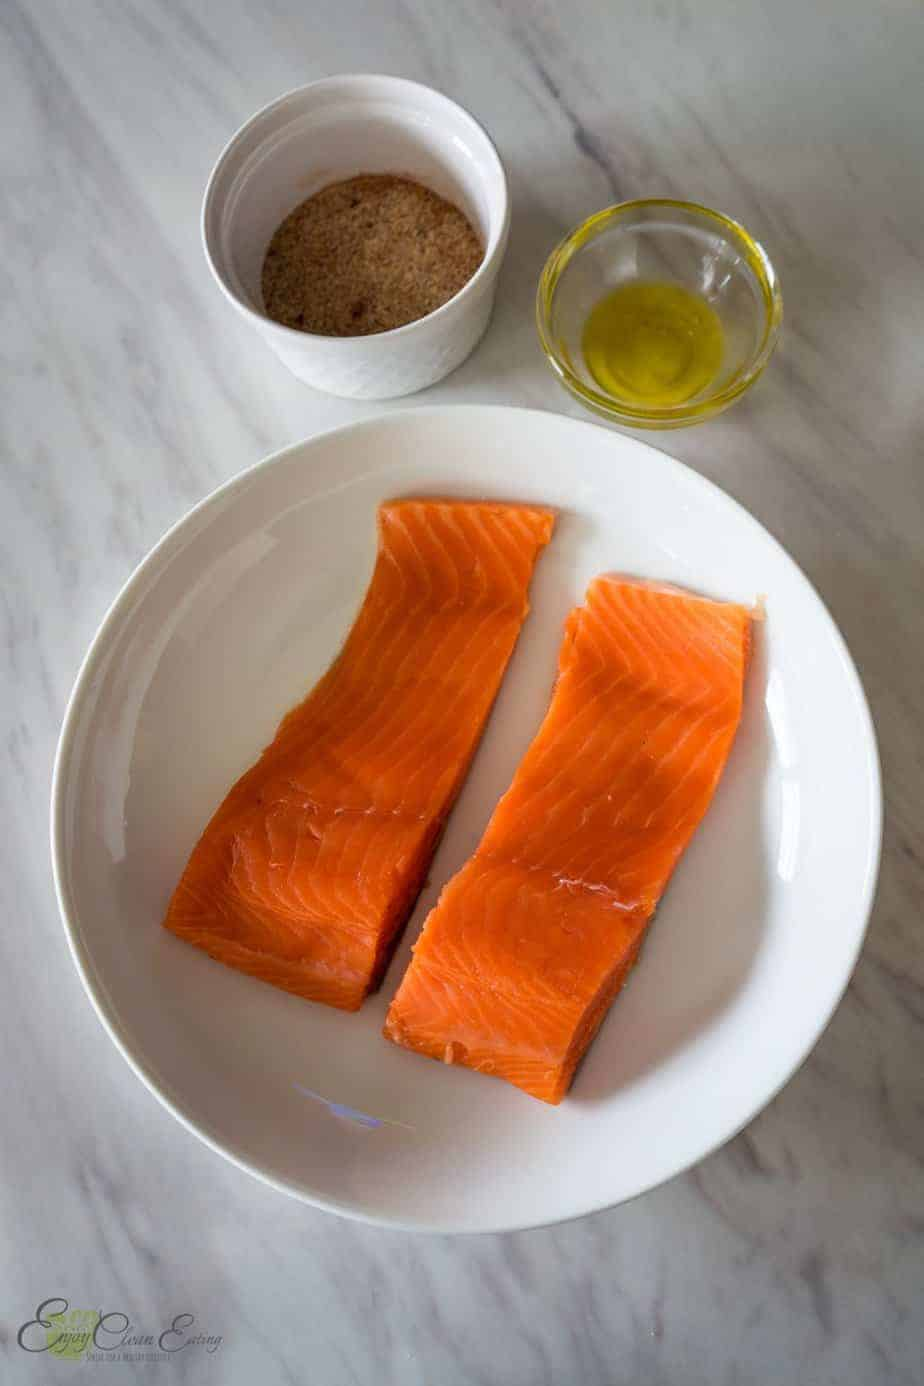 2 pieces of raw fish with  the seasoning cup and olive oil cup on the side